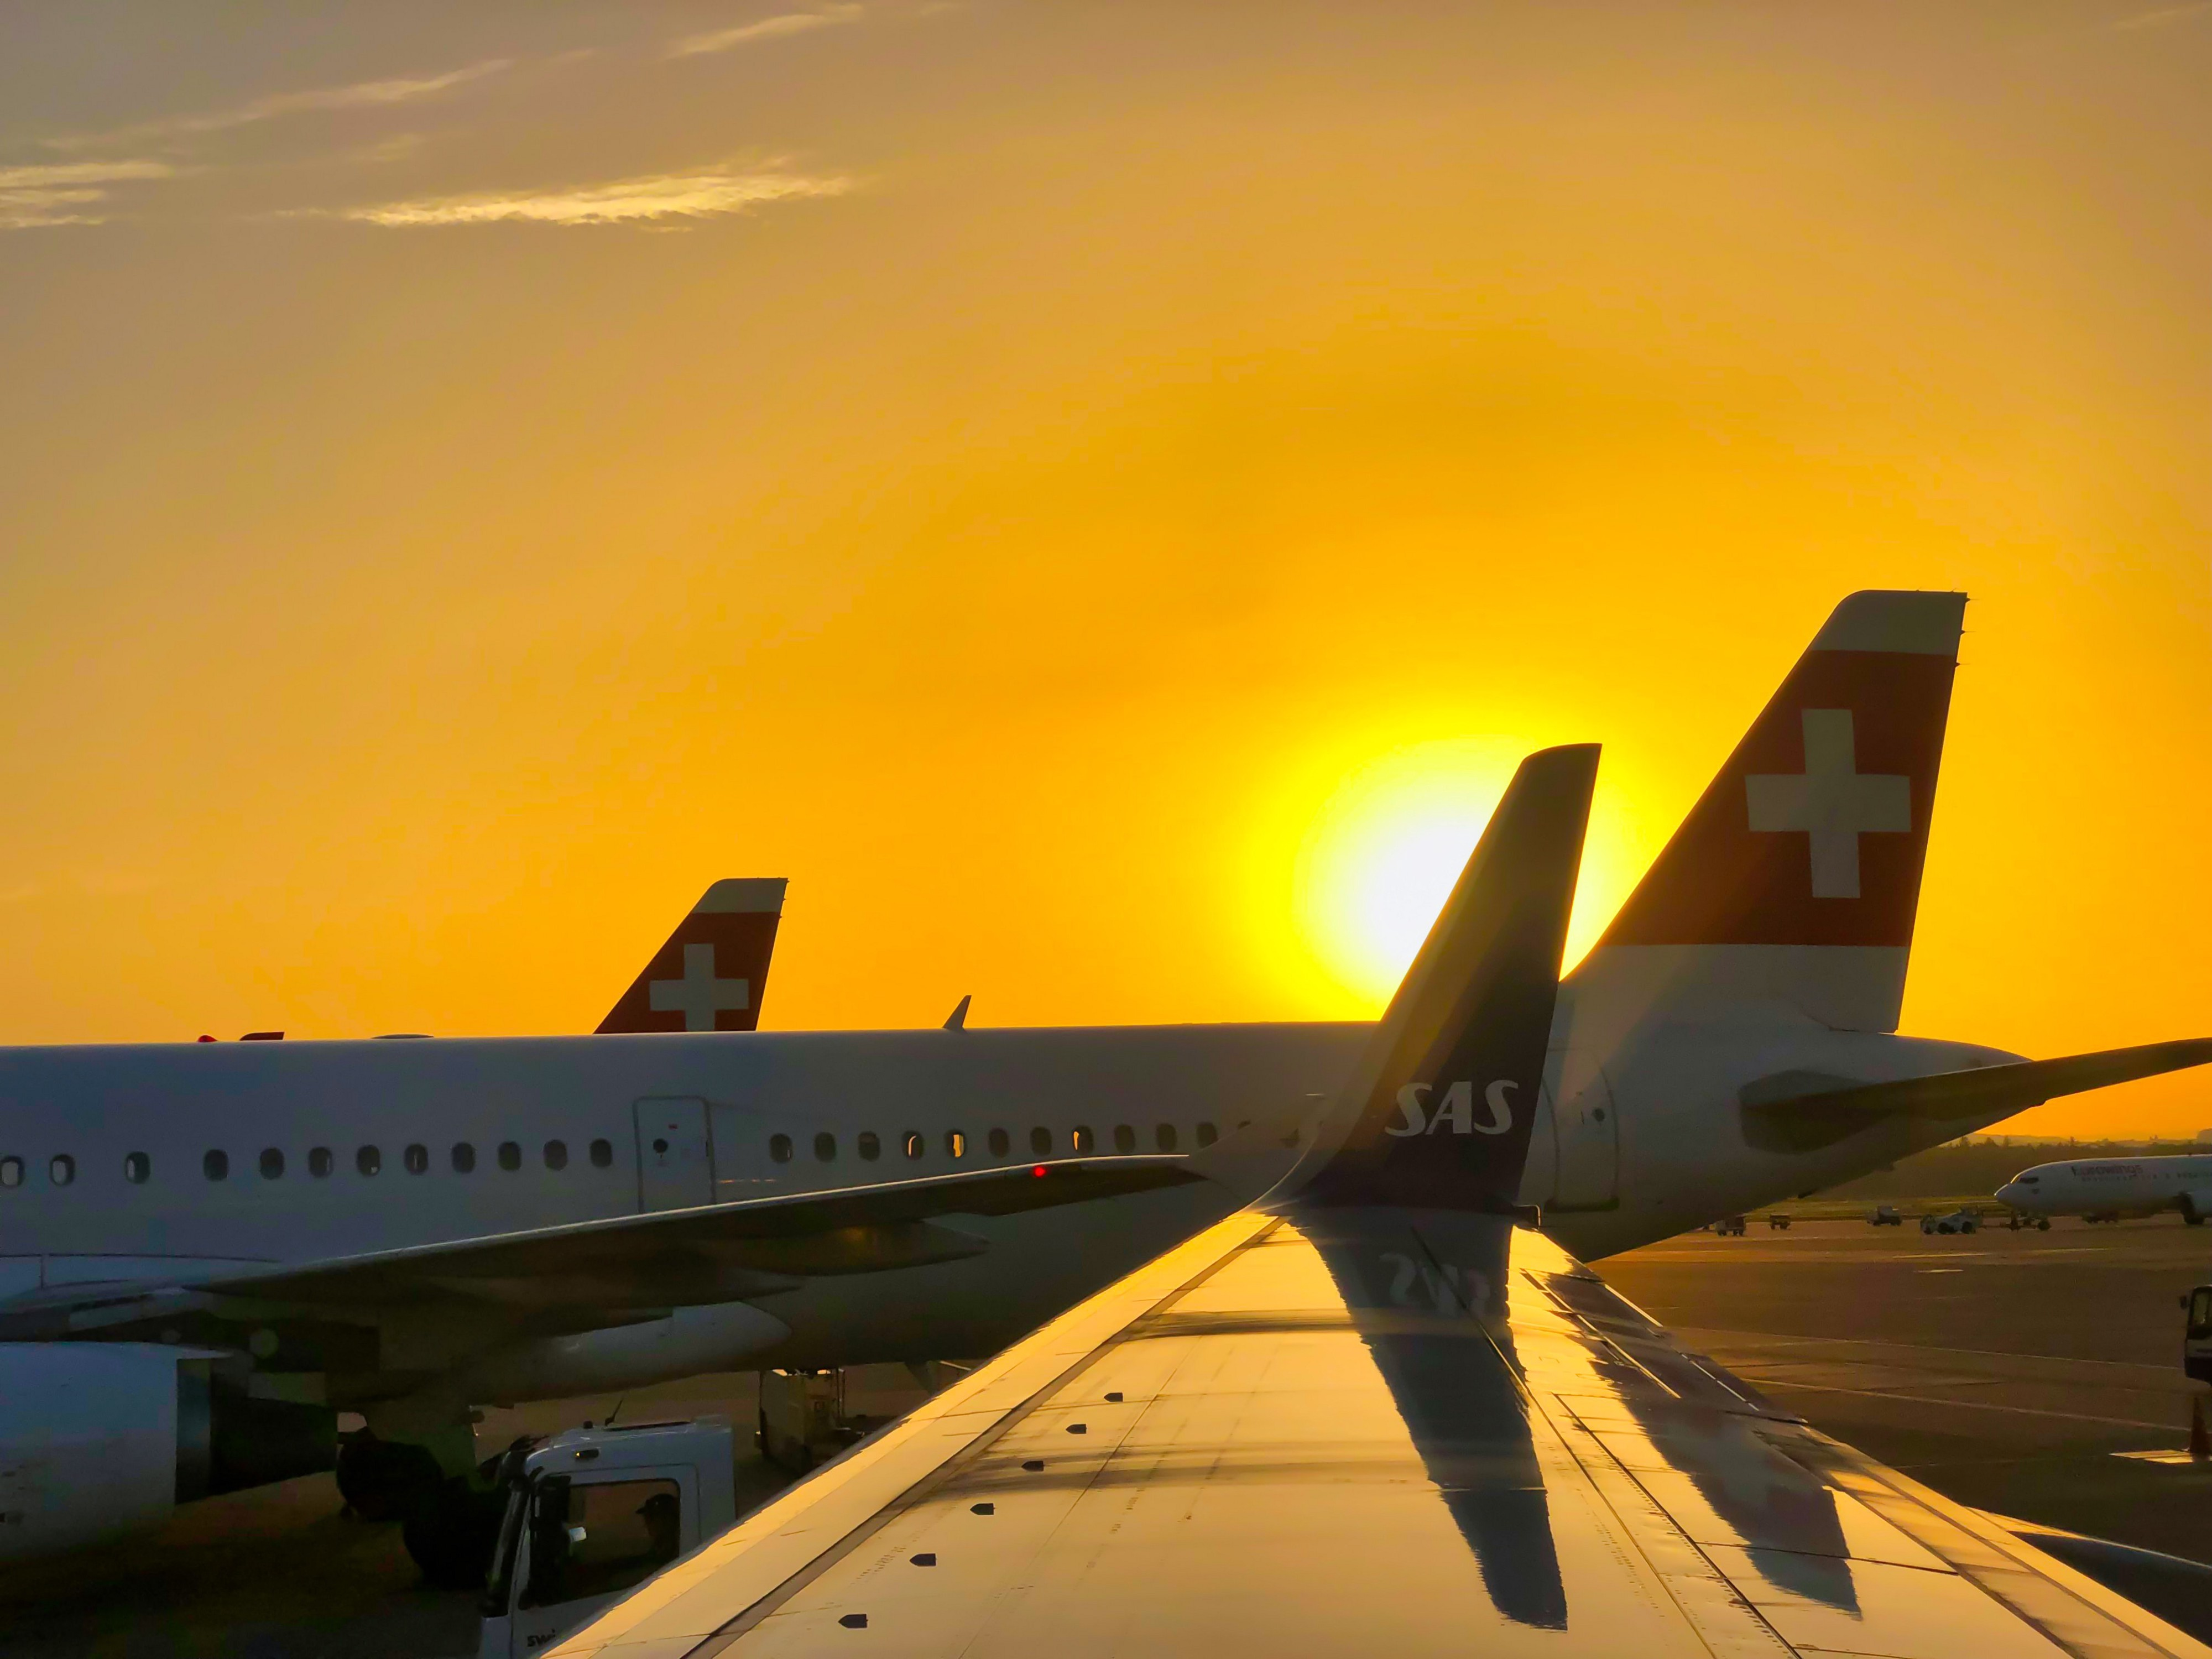 Landed aircrafts at an airport with a beautiful orange sunset color behind those tails.